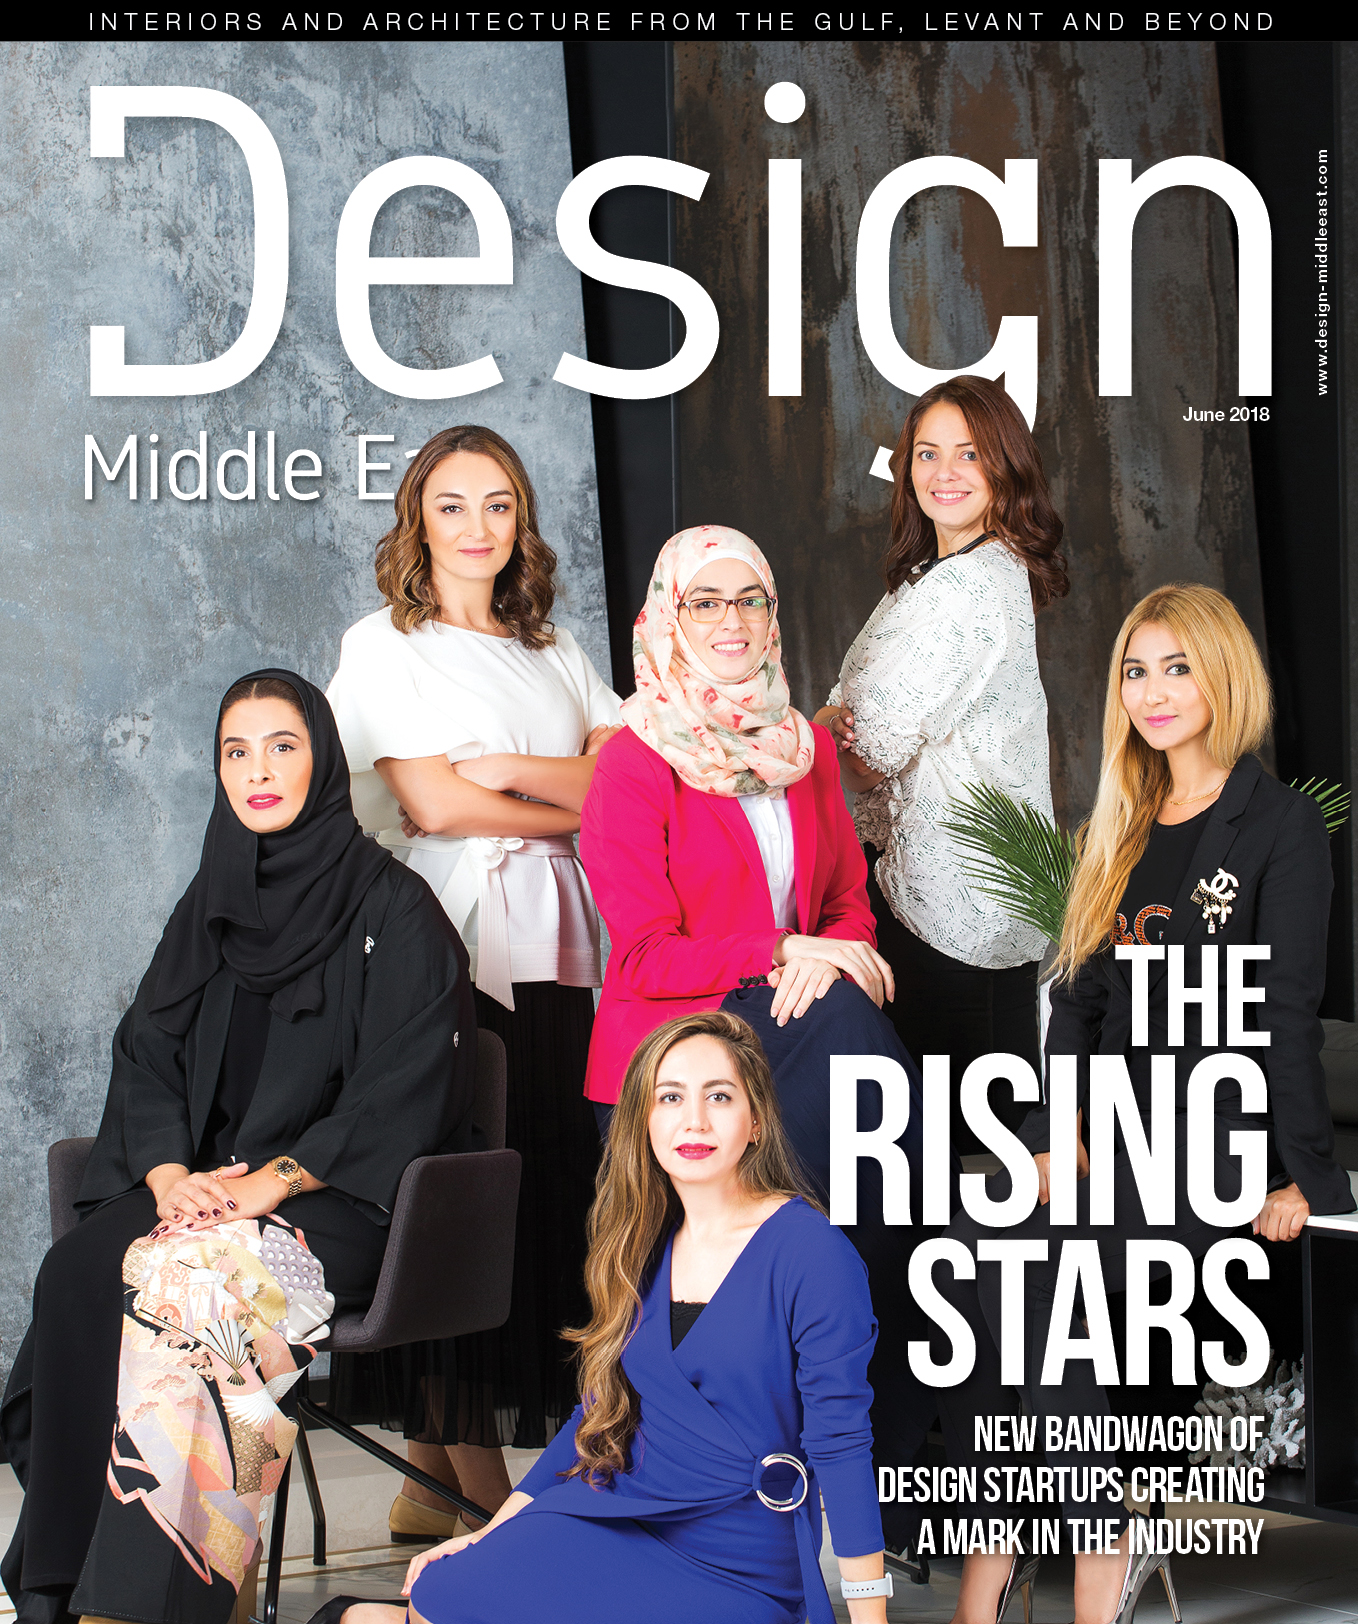 https://www.cbnme.com/magazines/design-middle-east-june-2018/